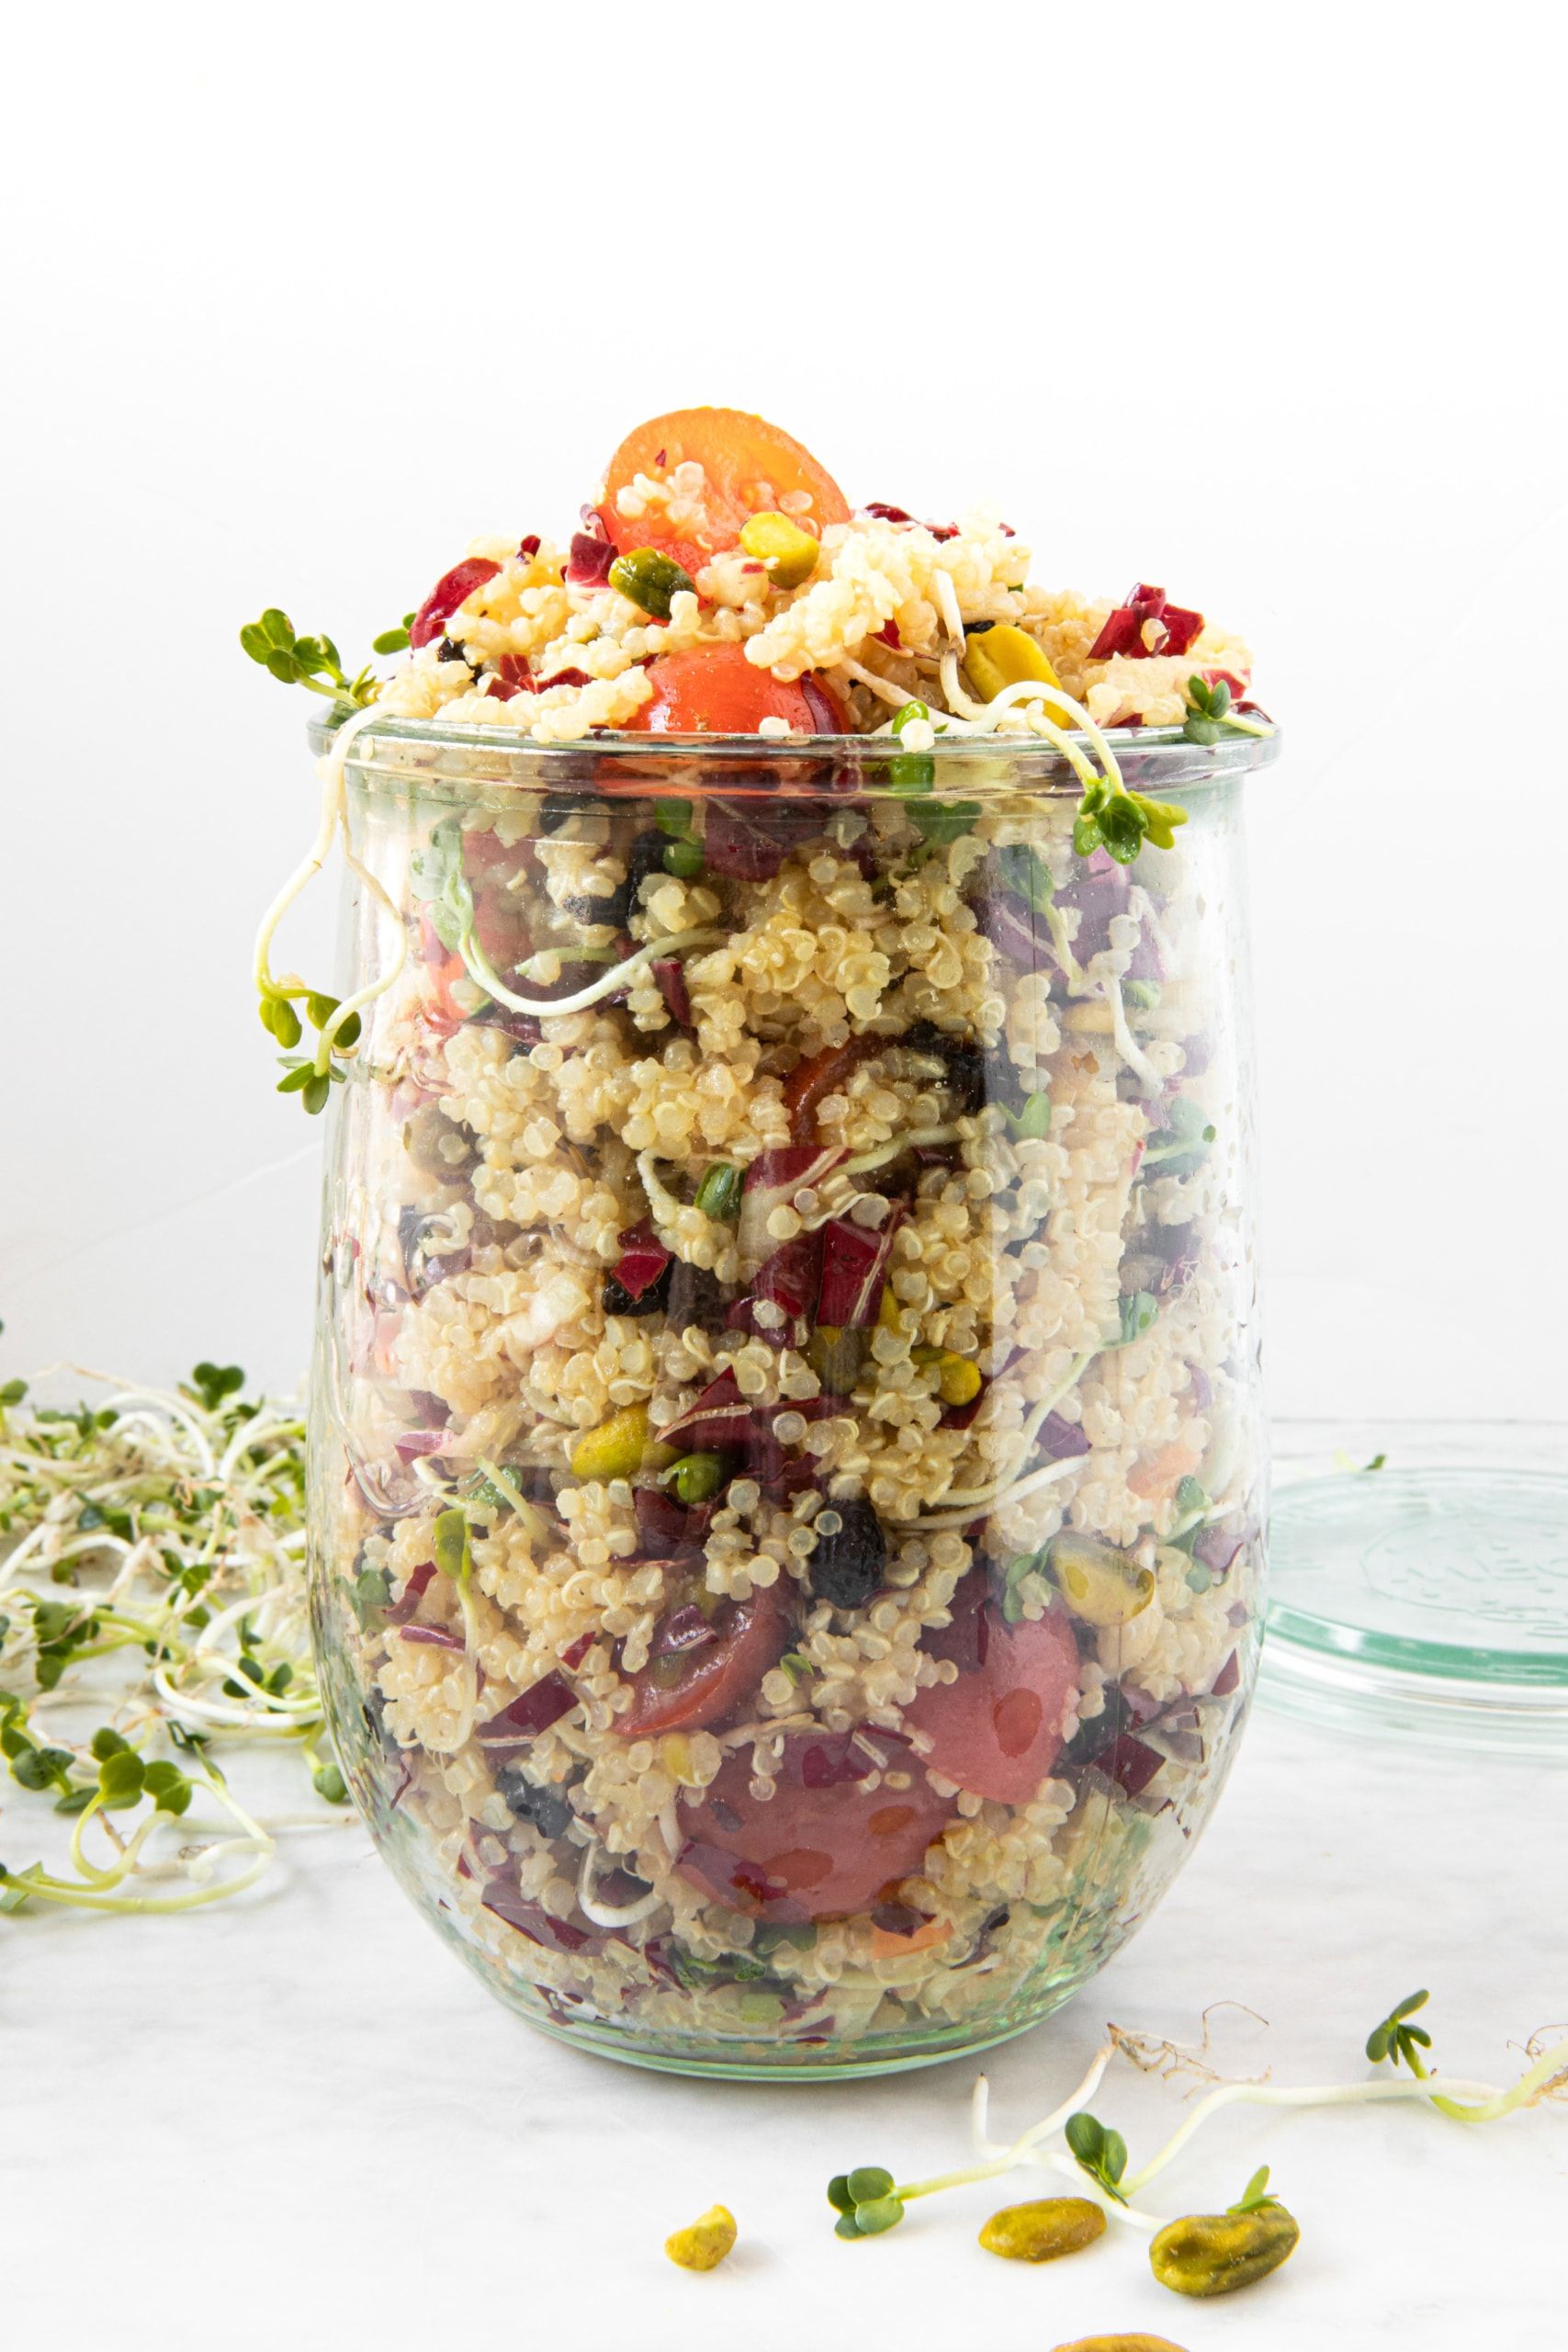 Glass serving dish with Quinoa Salad With Cherry Tomatoes, Radicchio, and Pistachios from verygoodcook.com